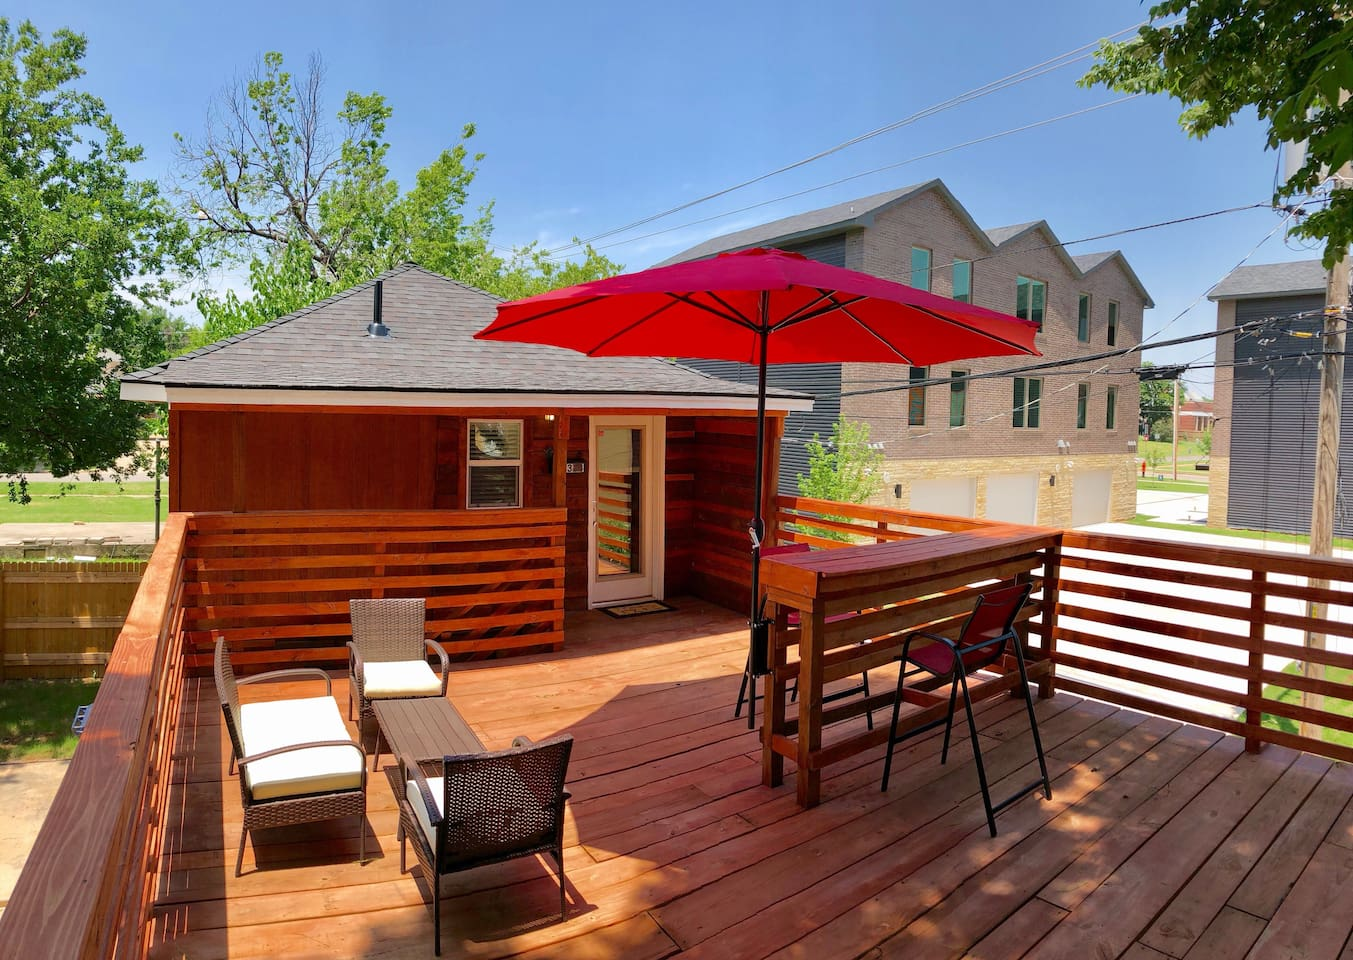 Patio Deck Area To Enjoy The Nice Weather